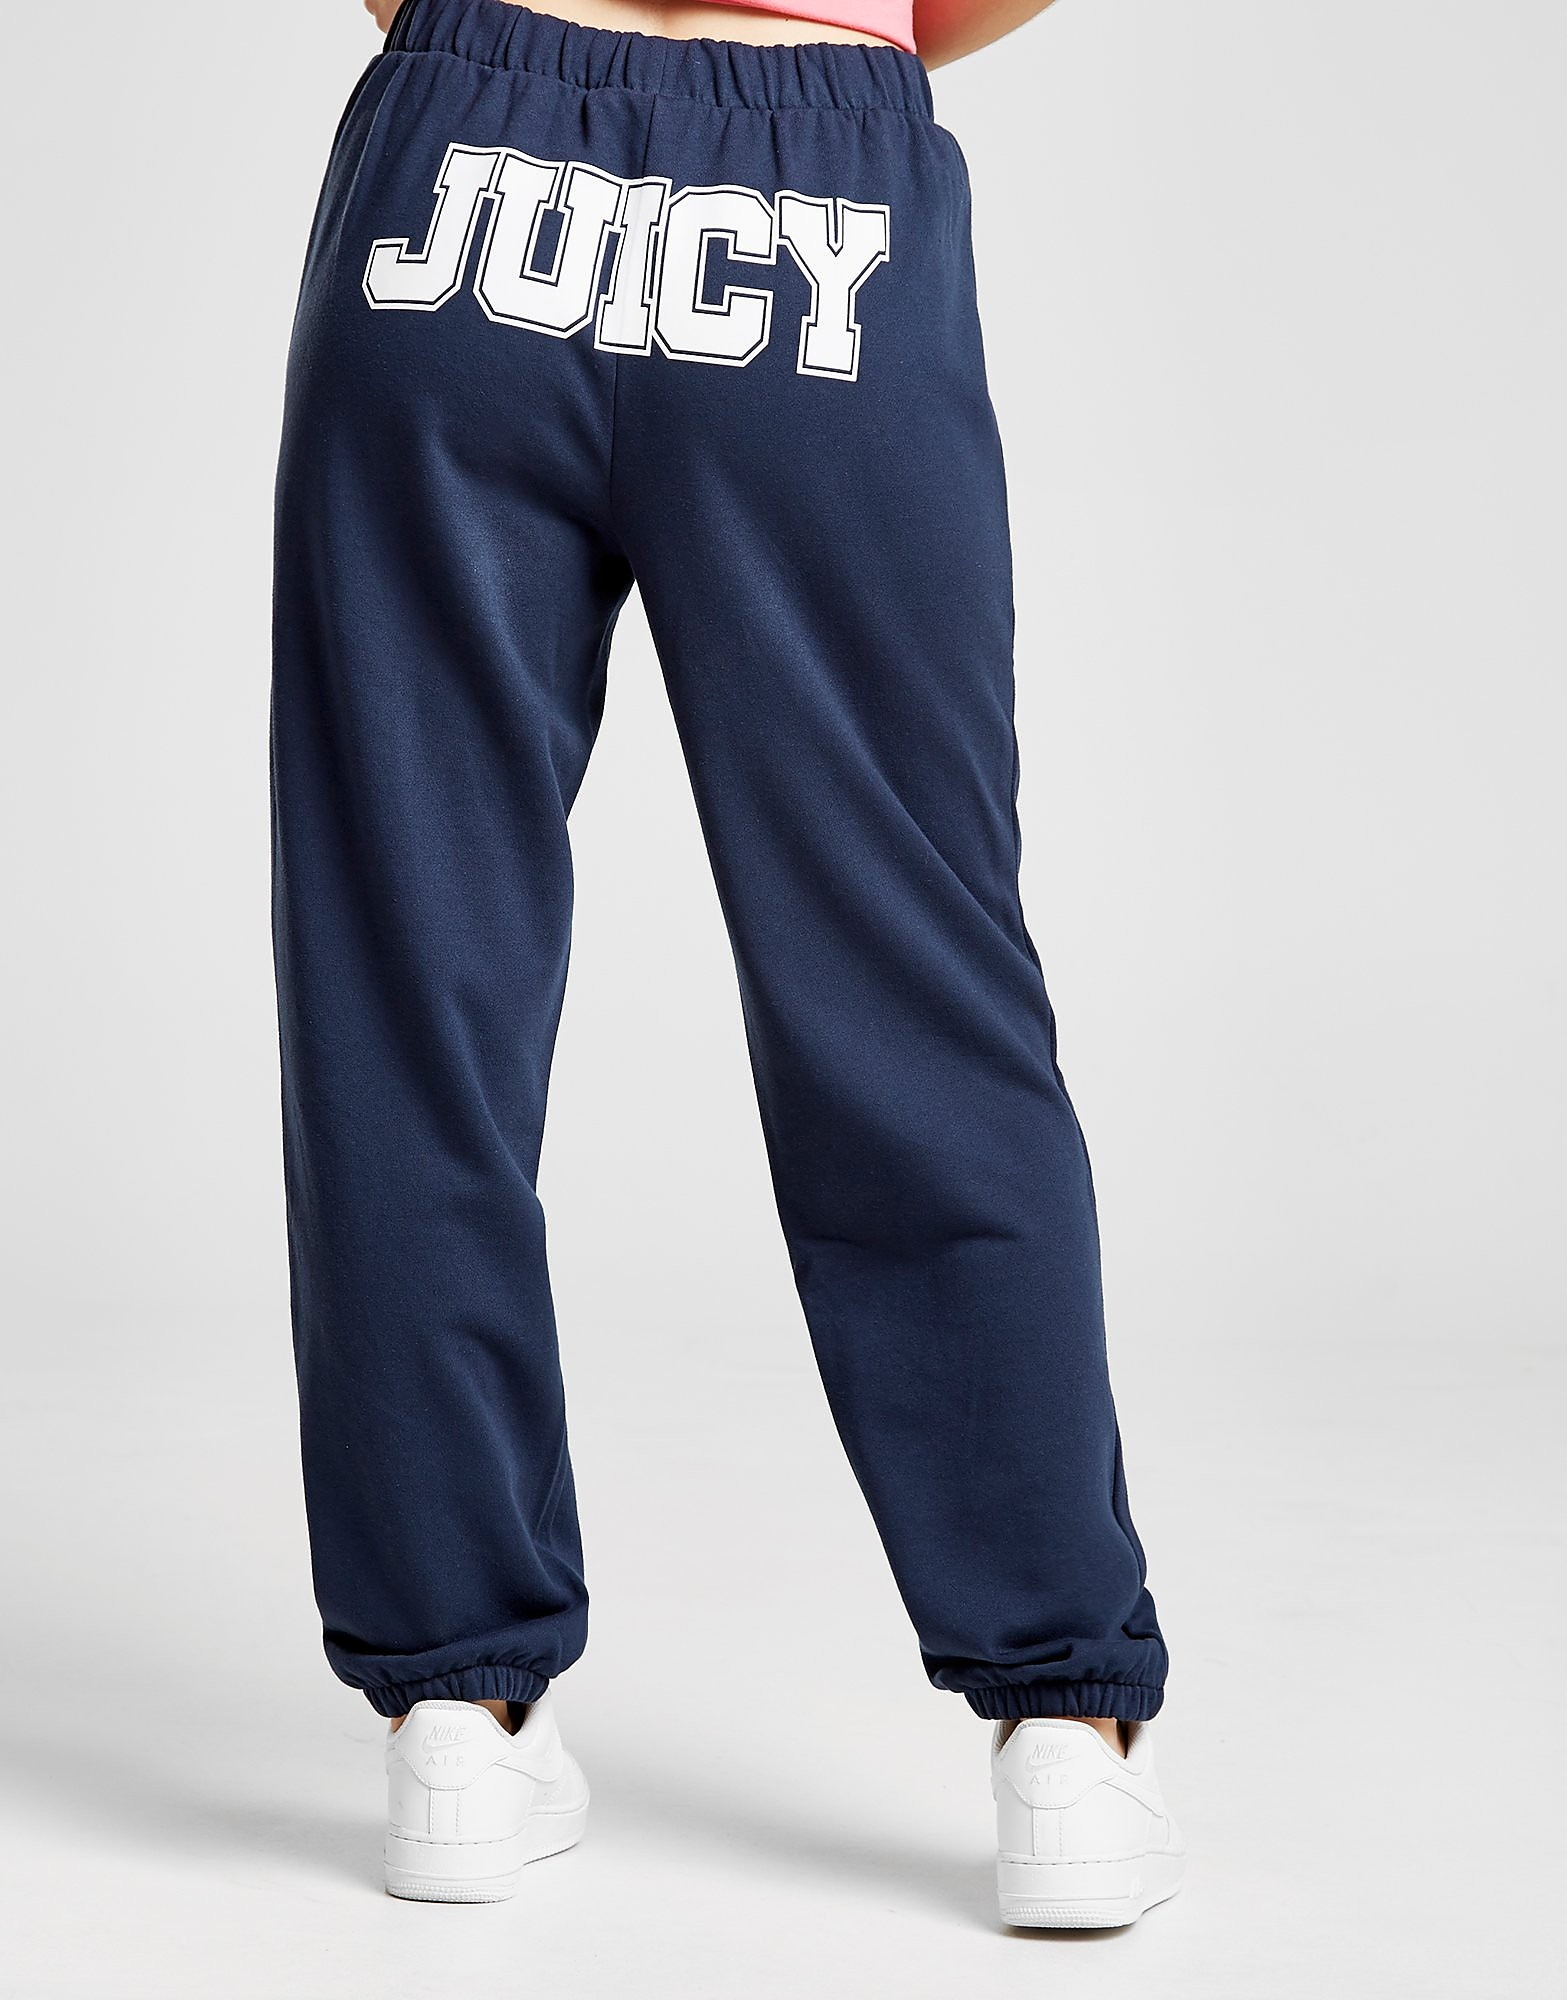 Juicy by Juicy Couture Collegiate Track Pants - Blauw - Dames